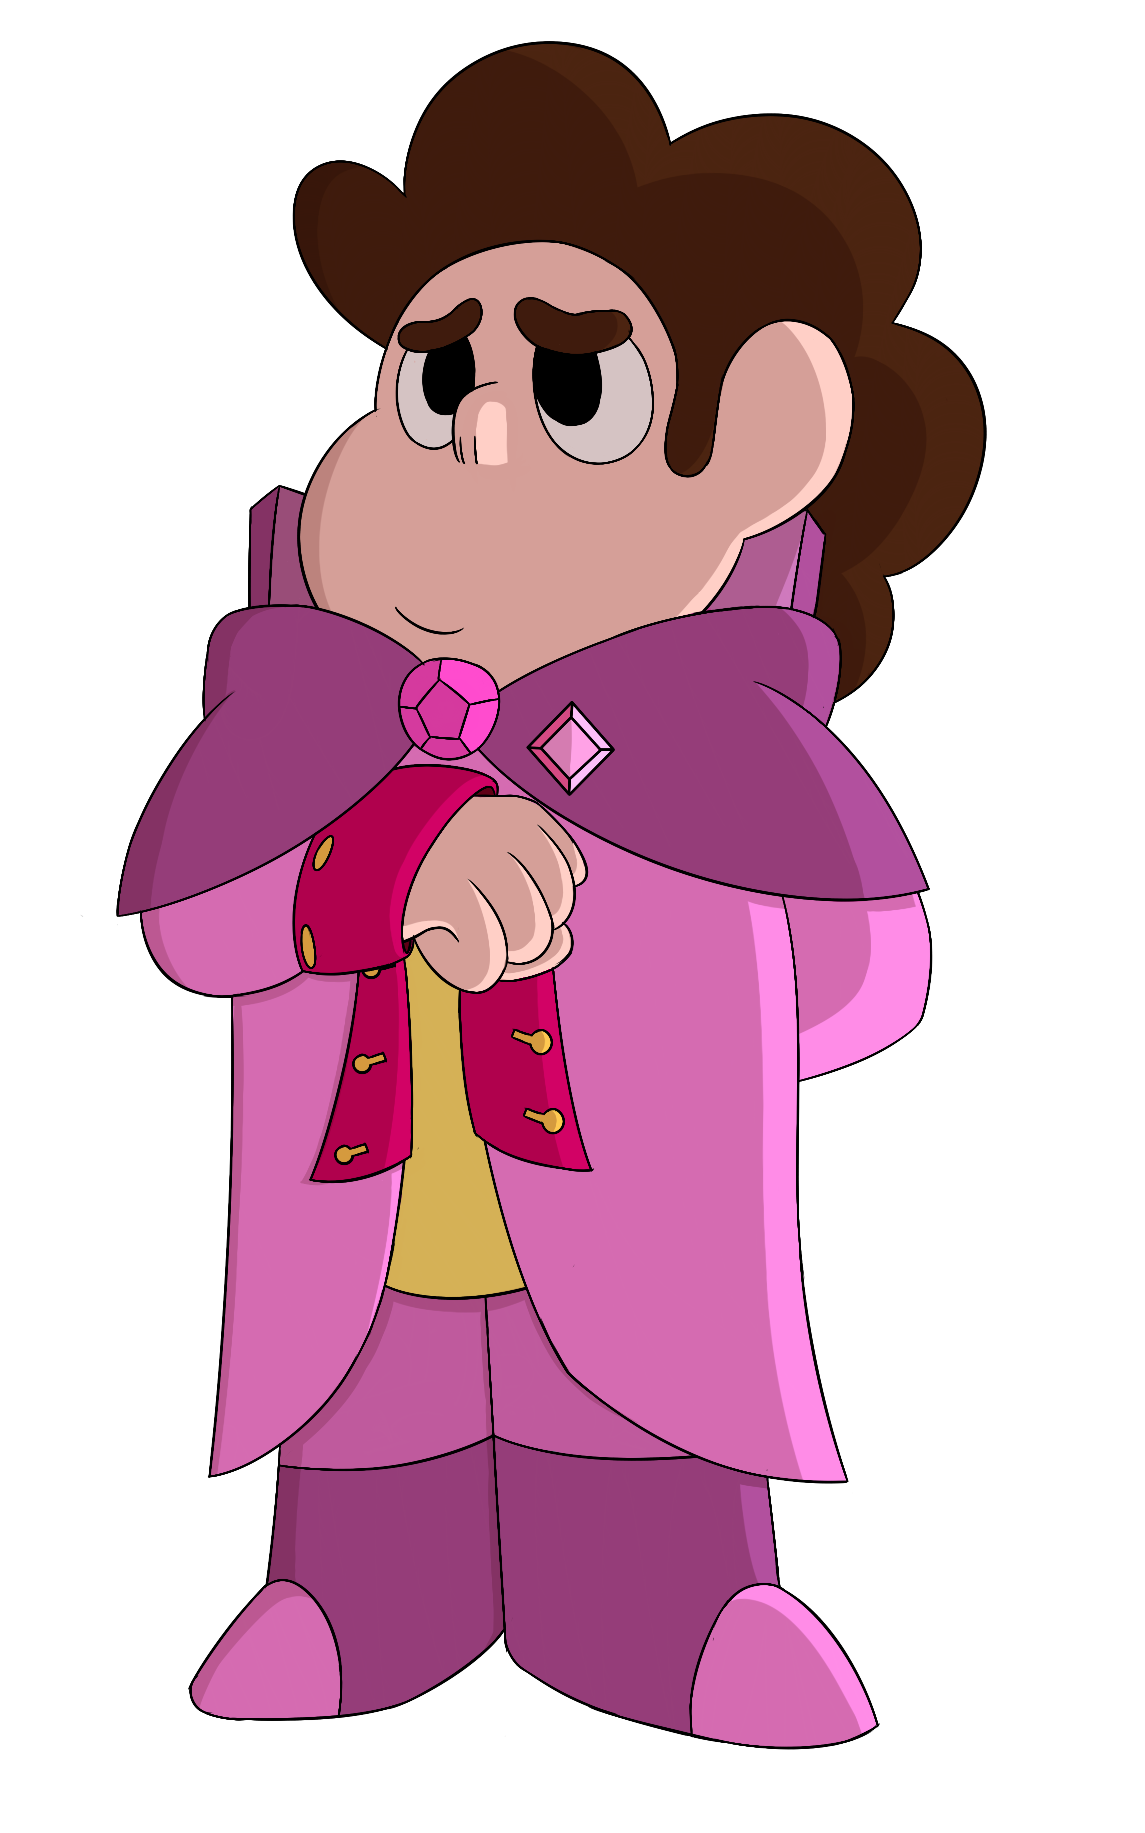 A commission for @clownarmy! Thank you for the commission! Steven as sort of an ambassador to Homeworld! He's nervous but he's trying. Commission me!